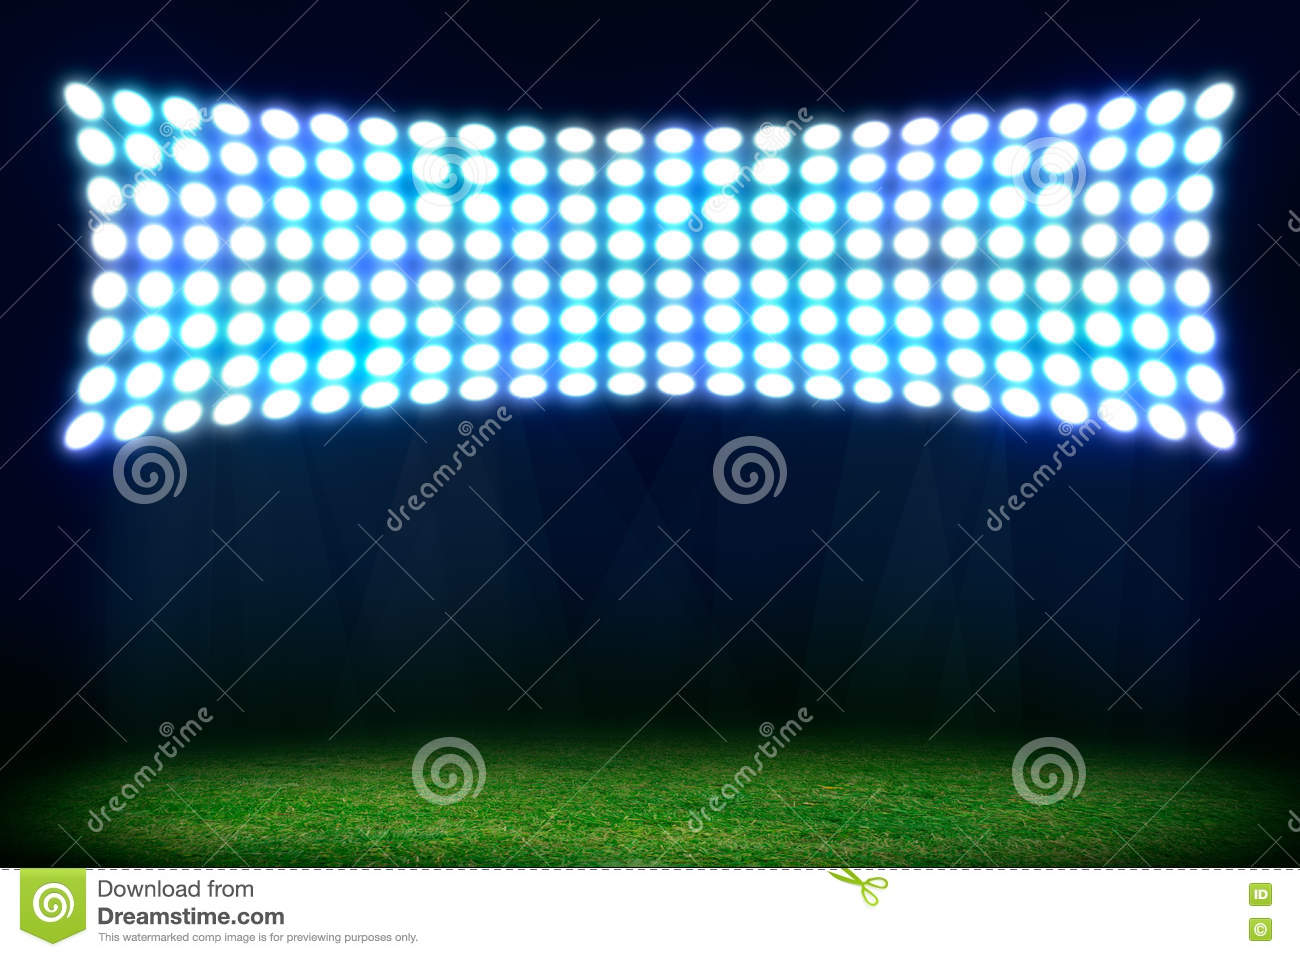 On The Stadium Abstract Football Or Soccer Backgrounds: Abstract Football Or Soccer Background Stock Photo